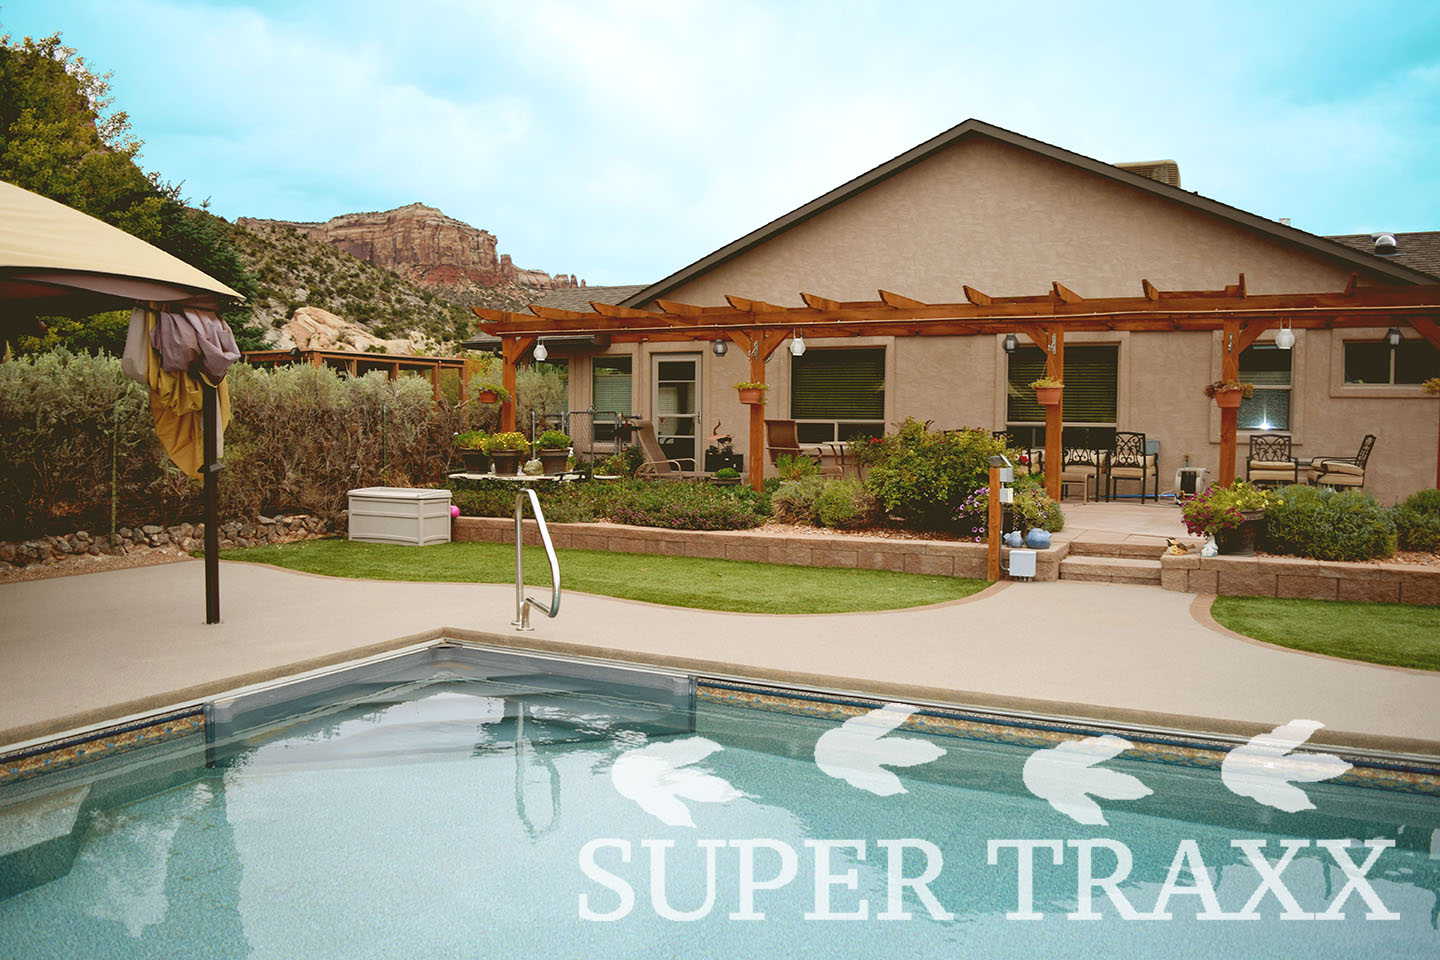 supertraxx outdoor flexx quartz sand coating on patio surrounding pool